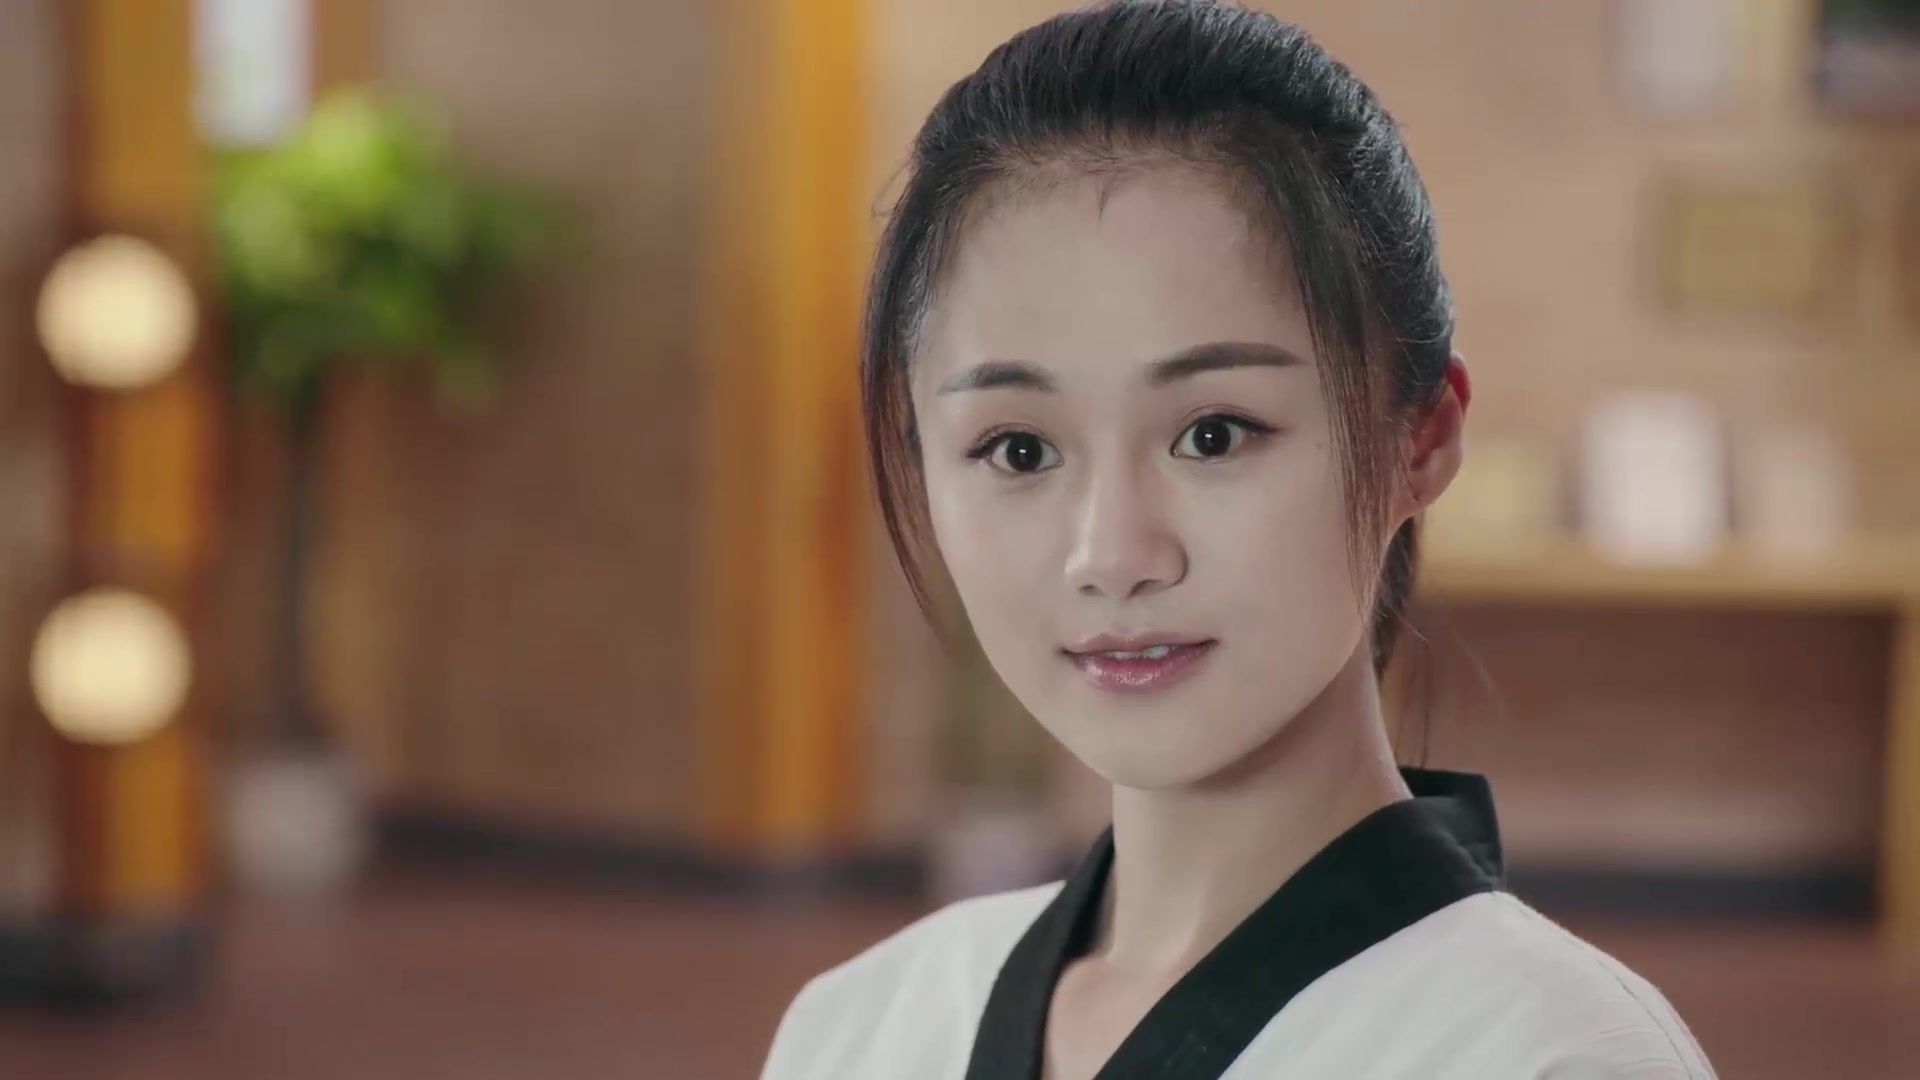 Whirlwind Girl 2 Episode 1